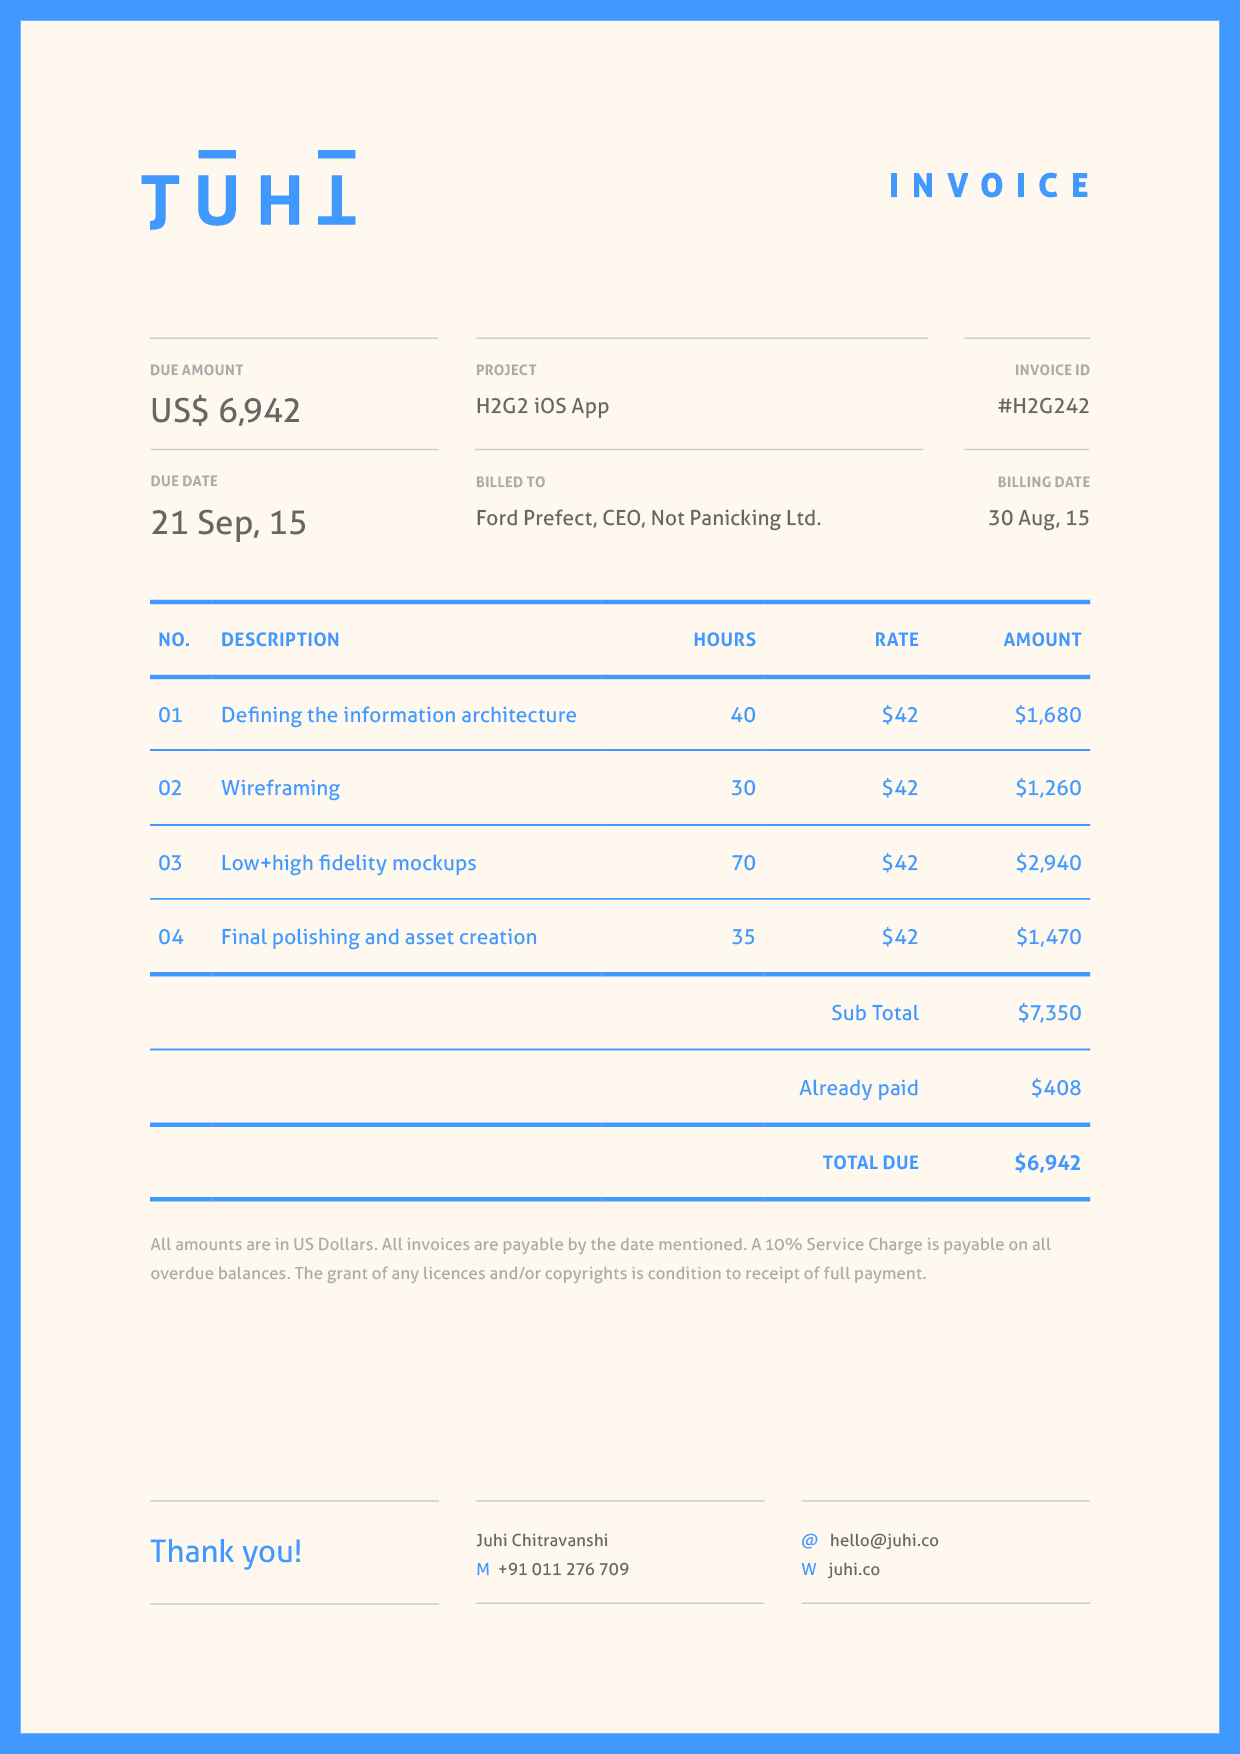 Thassosus  Outstanding Dont Hold Back On Your Invoice  Inspiring Designs  With Lovely Invoice By Juhi Chitravanshi Follow With Cool Proof Of Payment Receipt Also Star Receipt Printers In Addition Usps Tracking Lost Receipt And Credit Card Receipt Form As Well As Free Blank Receipt Template Additionally Company Receipts From Inspirationfeedcom With Thassosus  Lovely Dont Hold Back On Your Invoice  Inspiring Designs  With Cool Invoice By Juhi Chitravanshi Follow And Outstanding Proof Of Payment Receipt Also Star Receipt Printers In Addition Usps Tracking Lost Receipt From Inspirationfeedcom